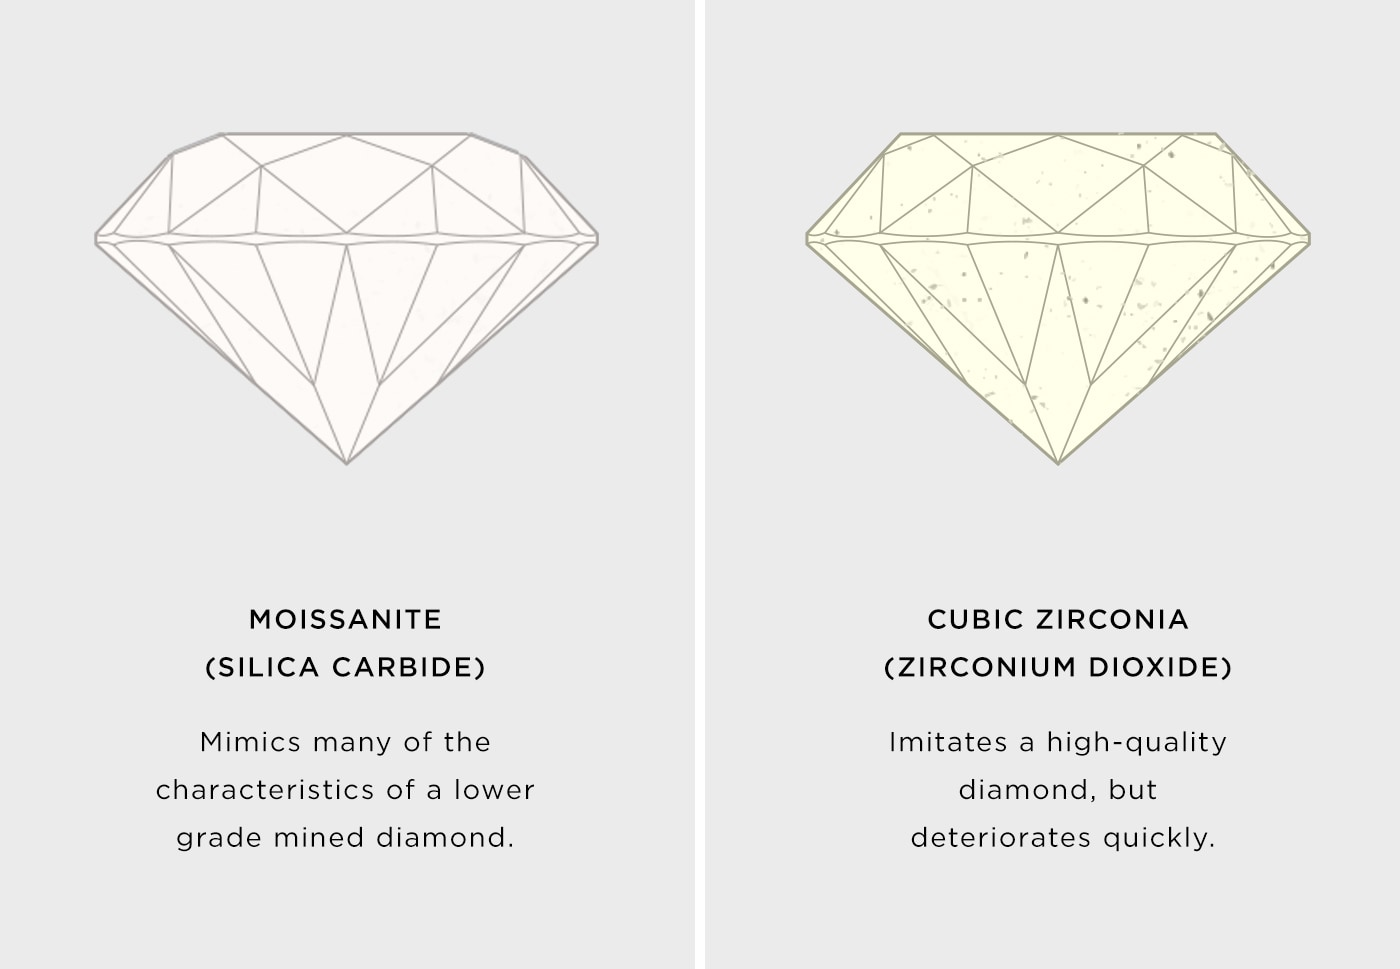 A depiction of how moissanite and cubic zirconia don't show the same characteristics of diamonds.